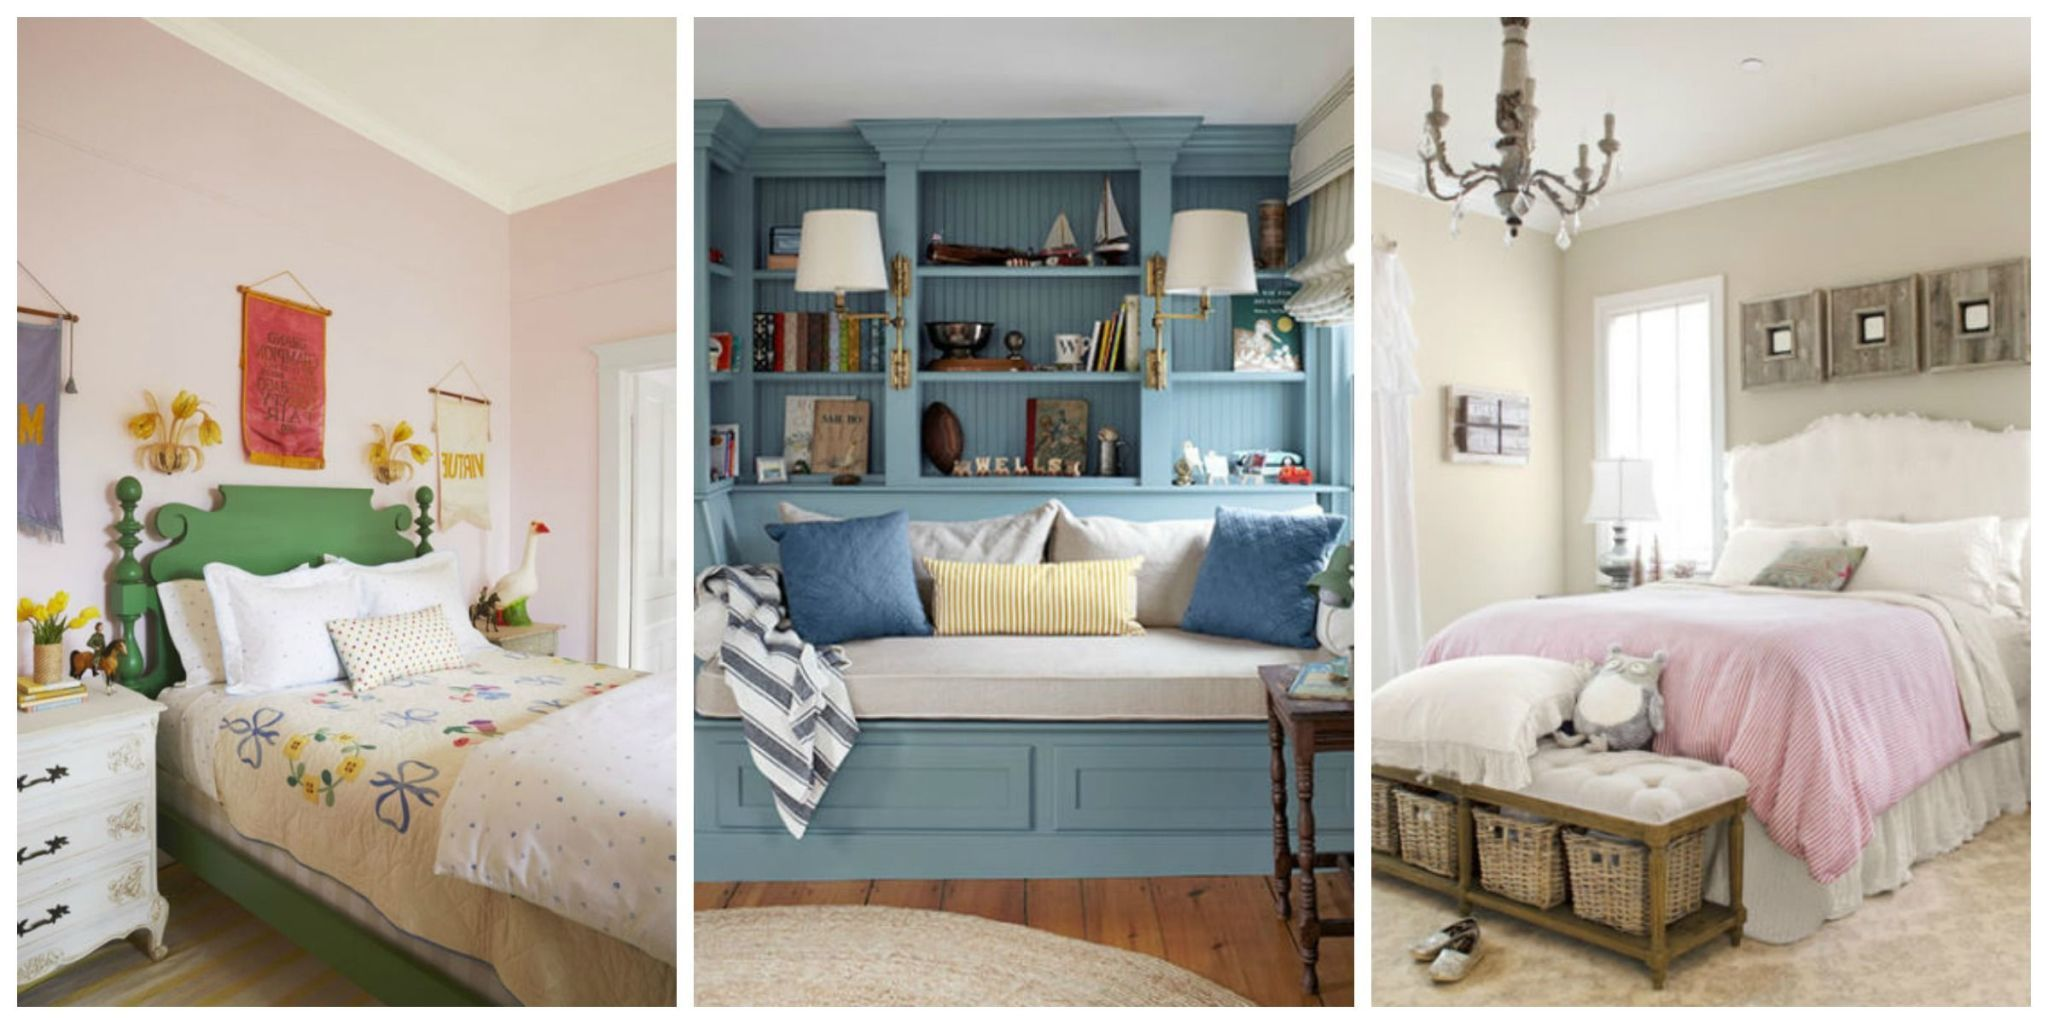 50 kids room decor ideas bedroom design and decorating for kids rh countryliving com Room Decorating Ideas for Young Women Room Decorating Ideas for Young Women